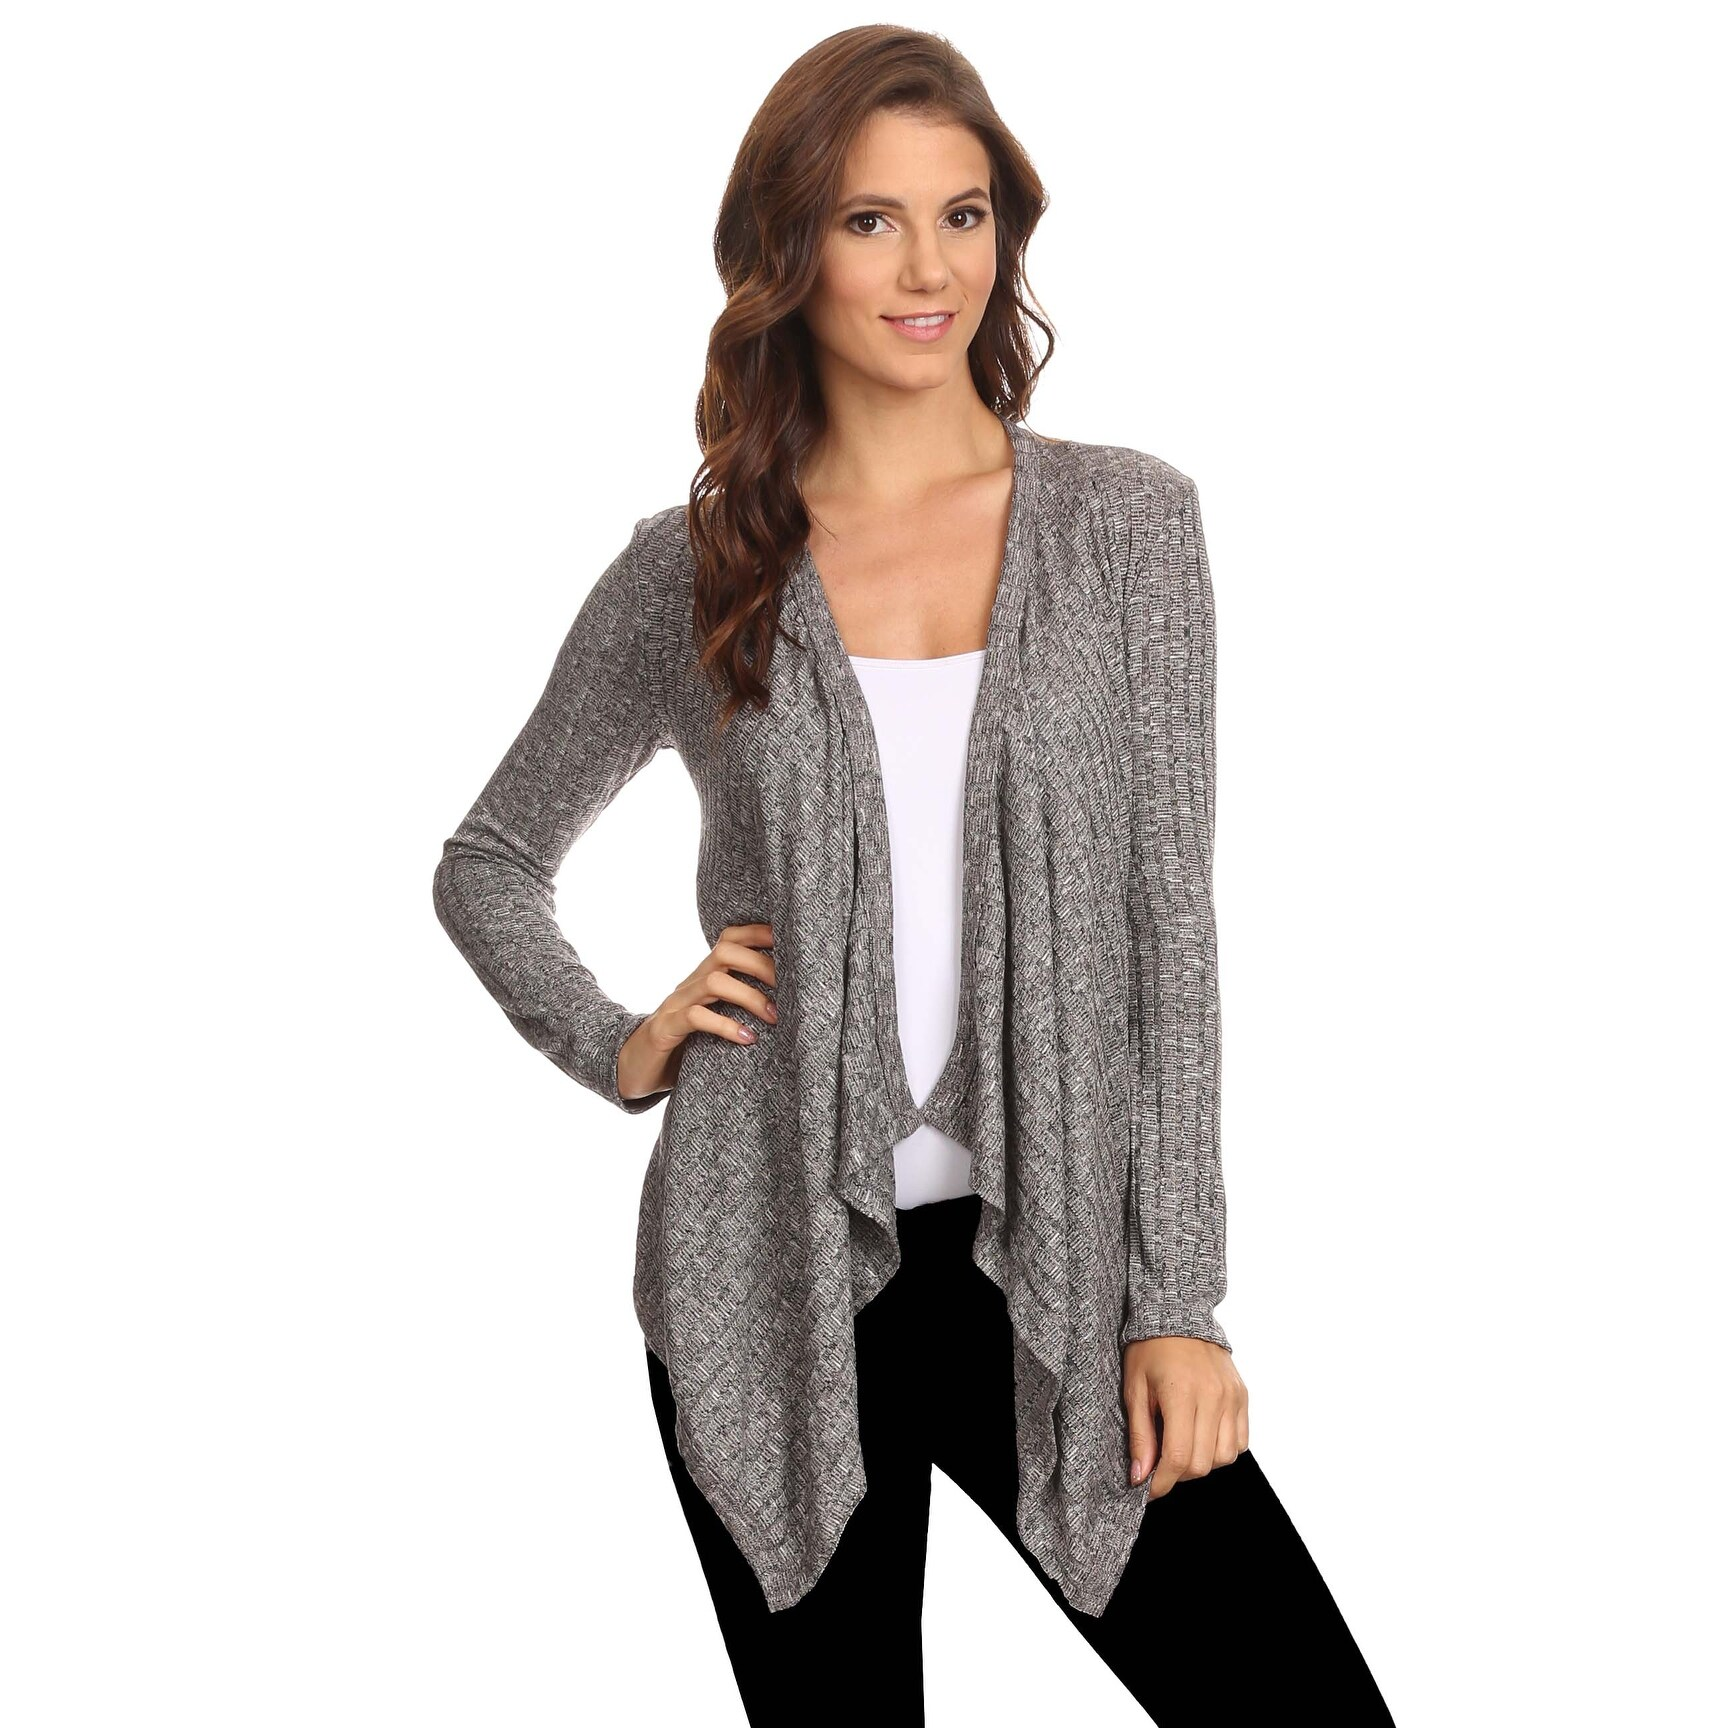 Sharon's Outlet Women's Ribbed Open Front Long Sleeve Cardigan Small to 3XL Made in USA - Thumbnail 0